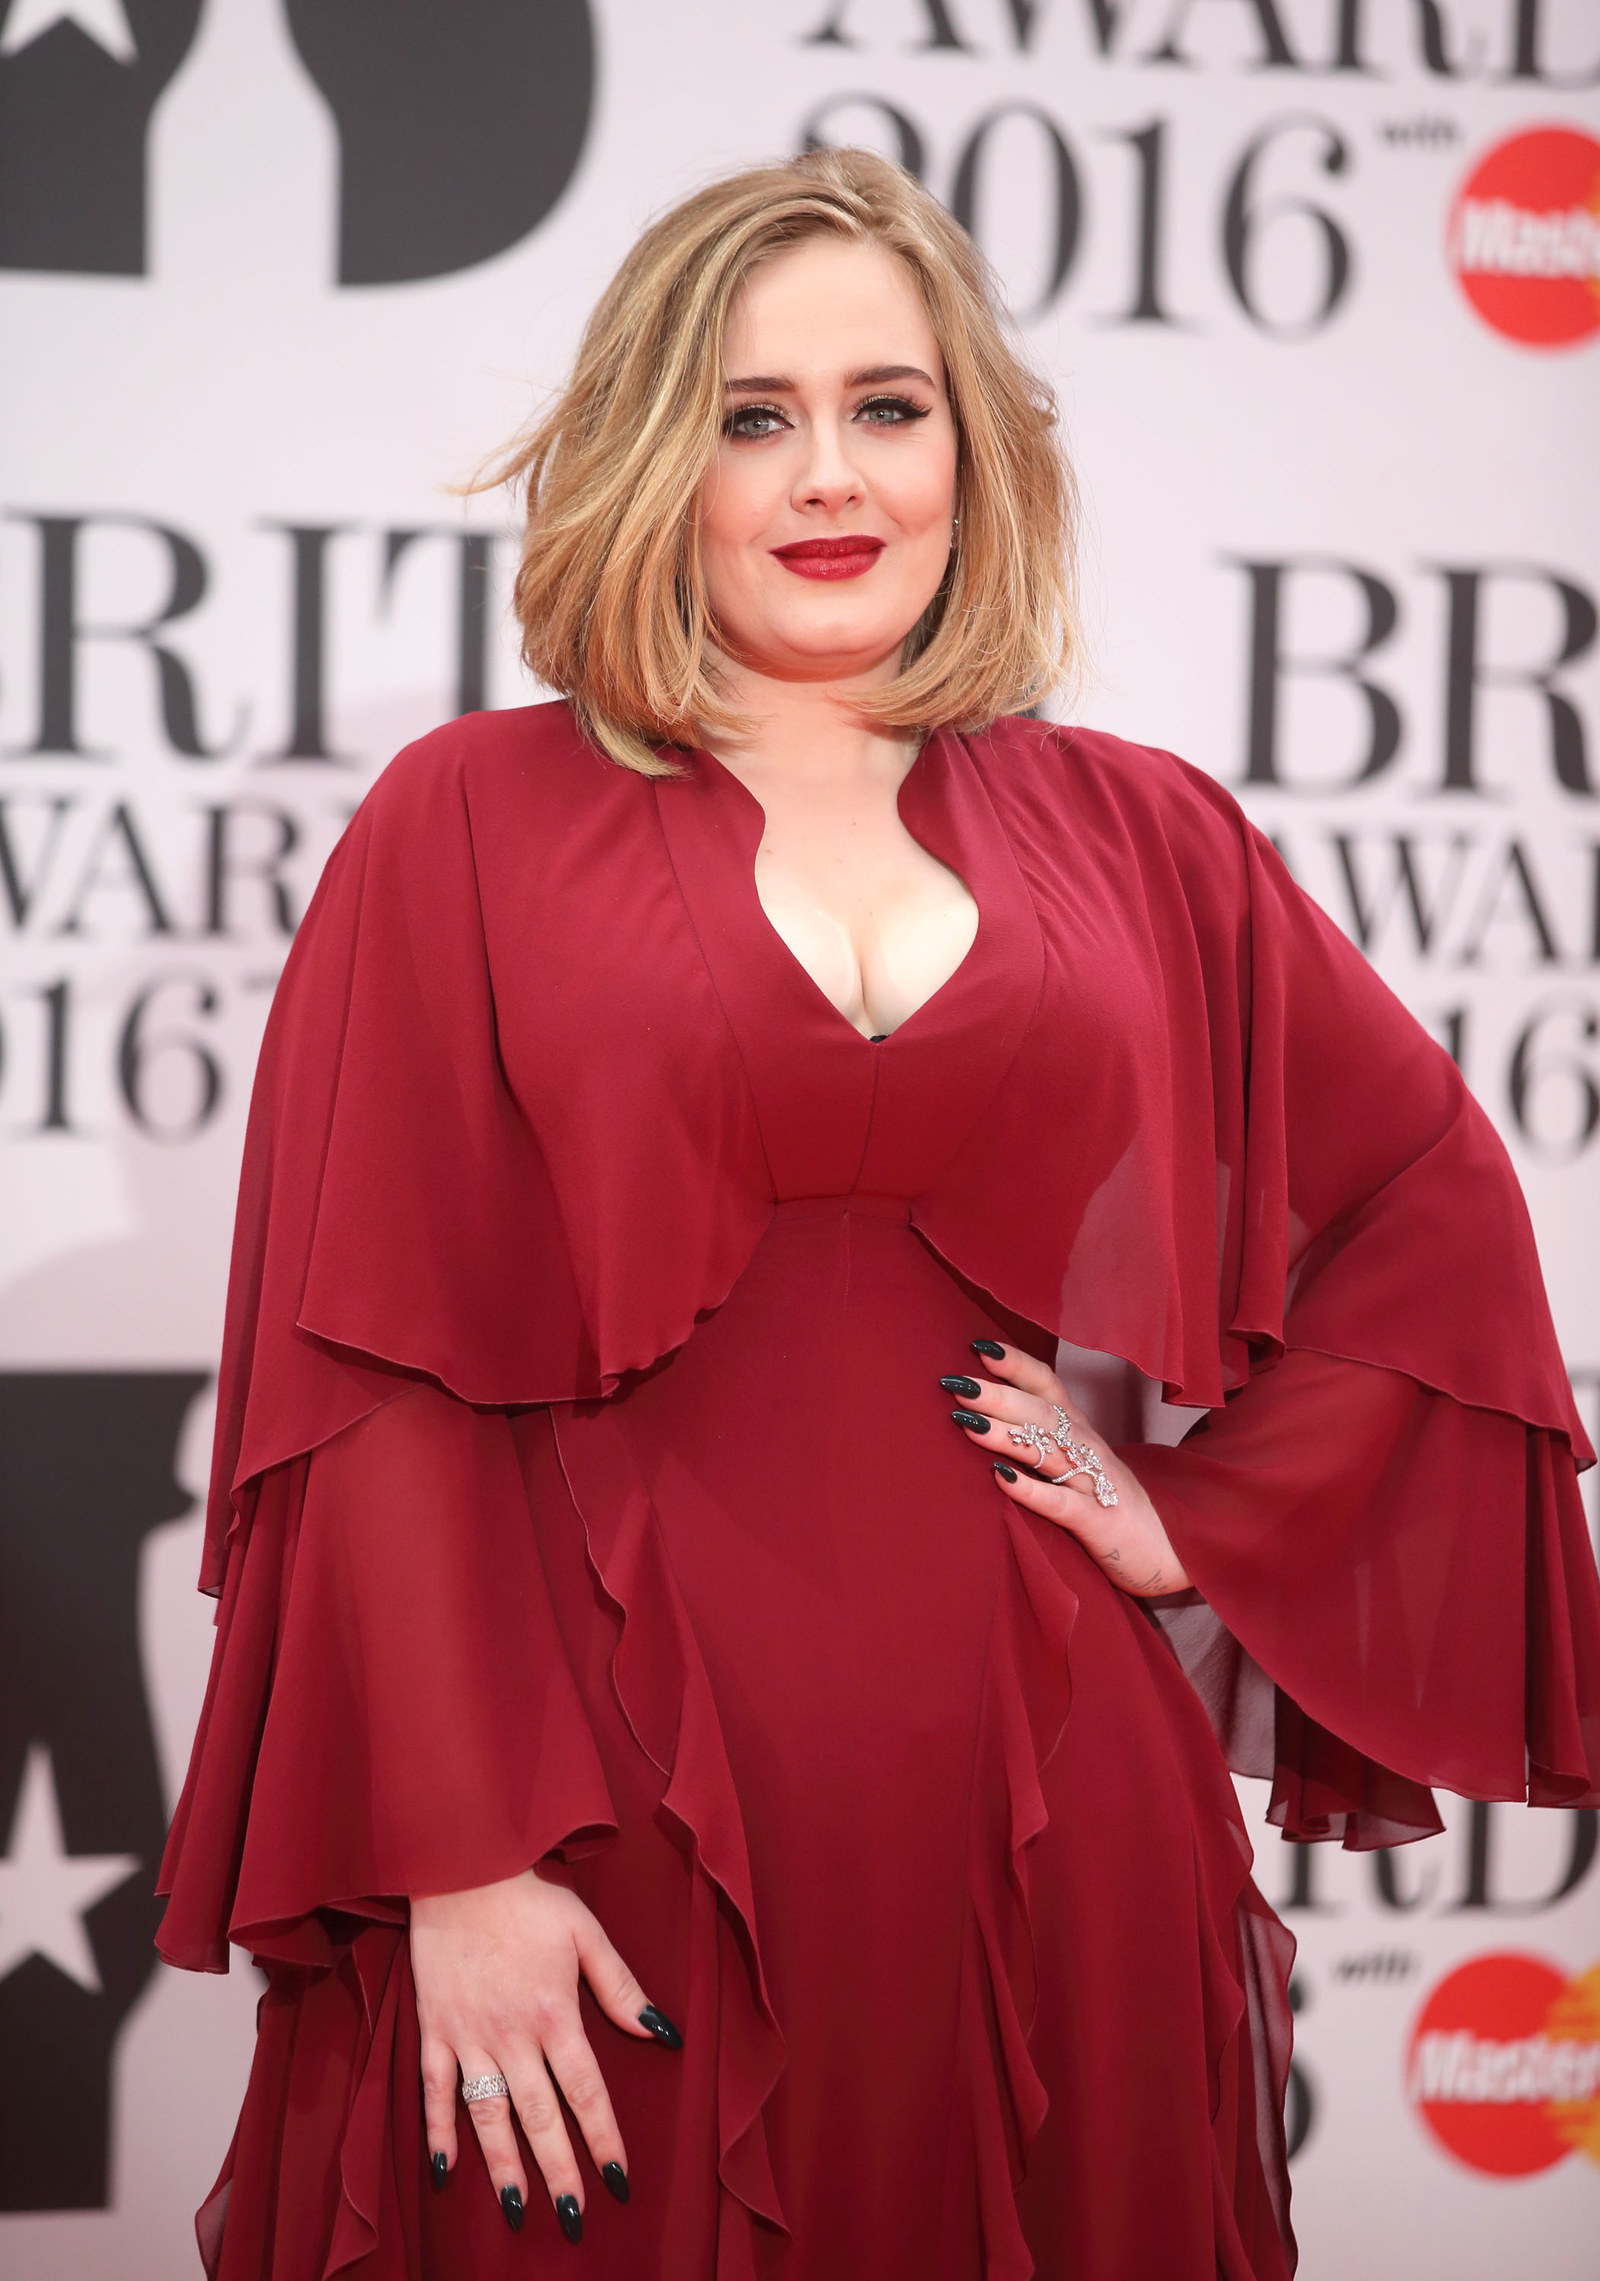 Adele, Jessie J, and Leona Lewis -  The singing superstars  were  all classmates at BRIT School for Performing Arts & Technology in London. Amy Winehouse also attended the famed performing arts school.